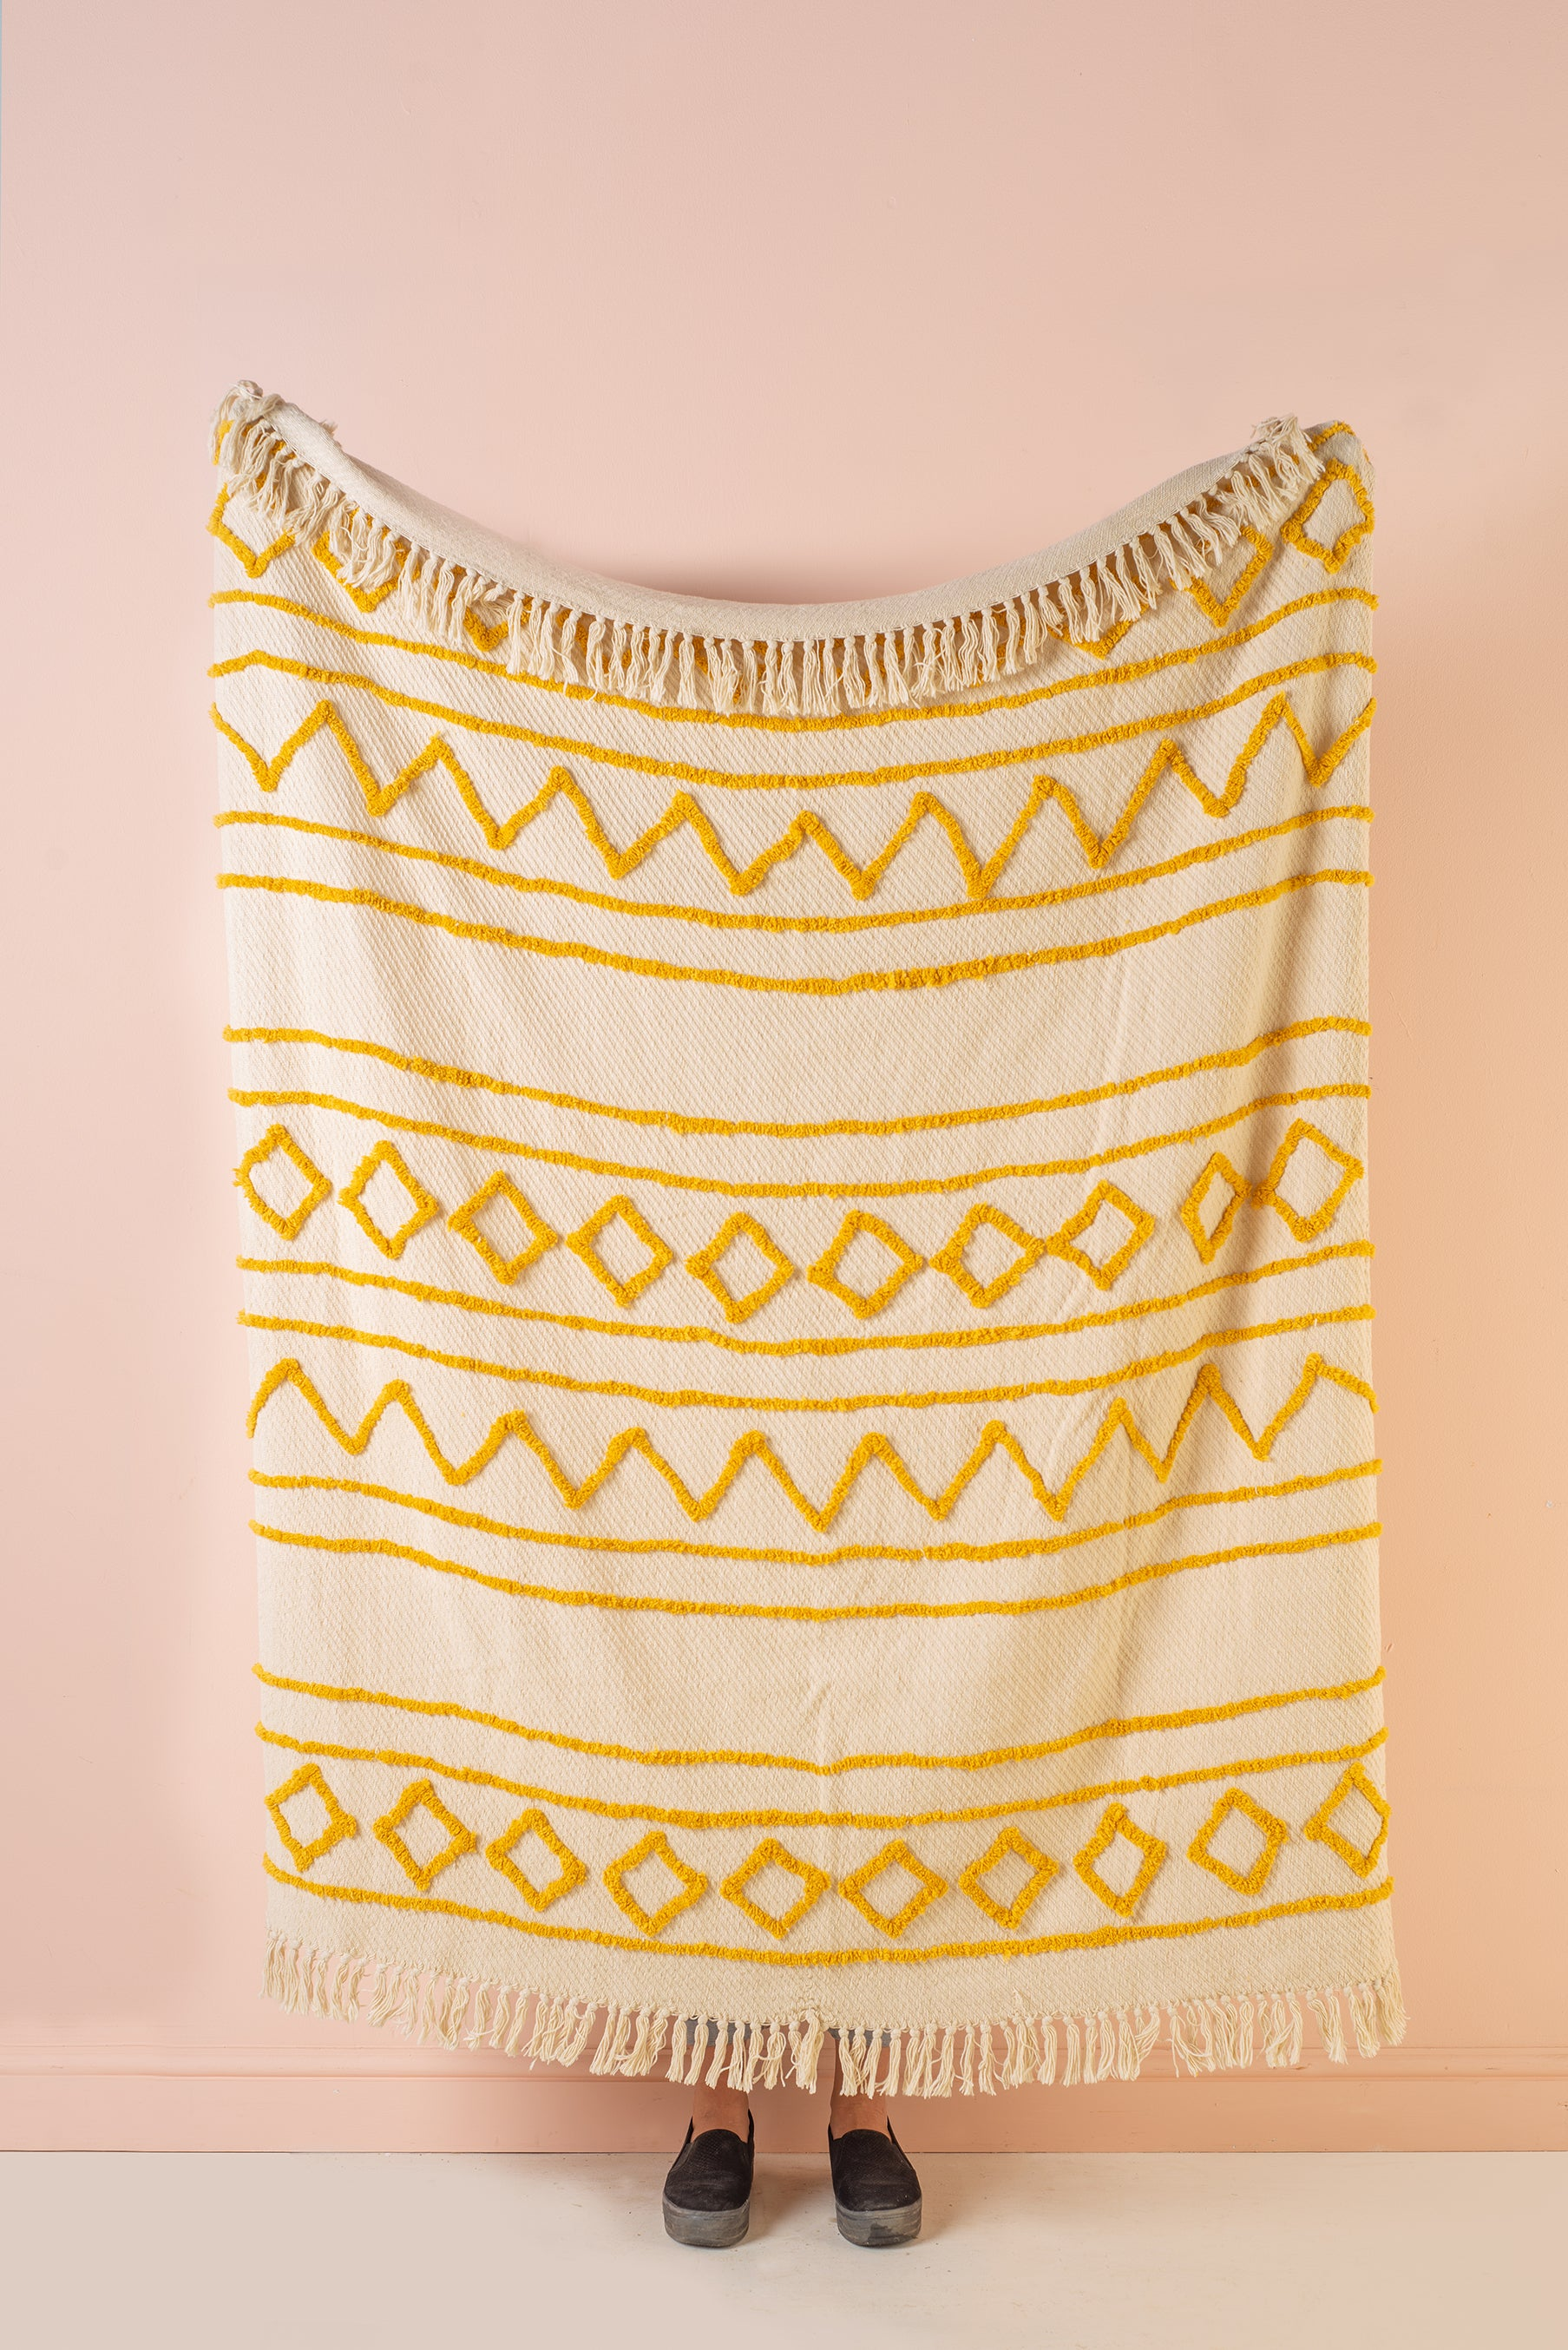 Zofie Natural & Mustard Cotton Tufted Woven Throw